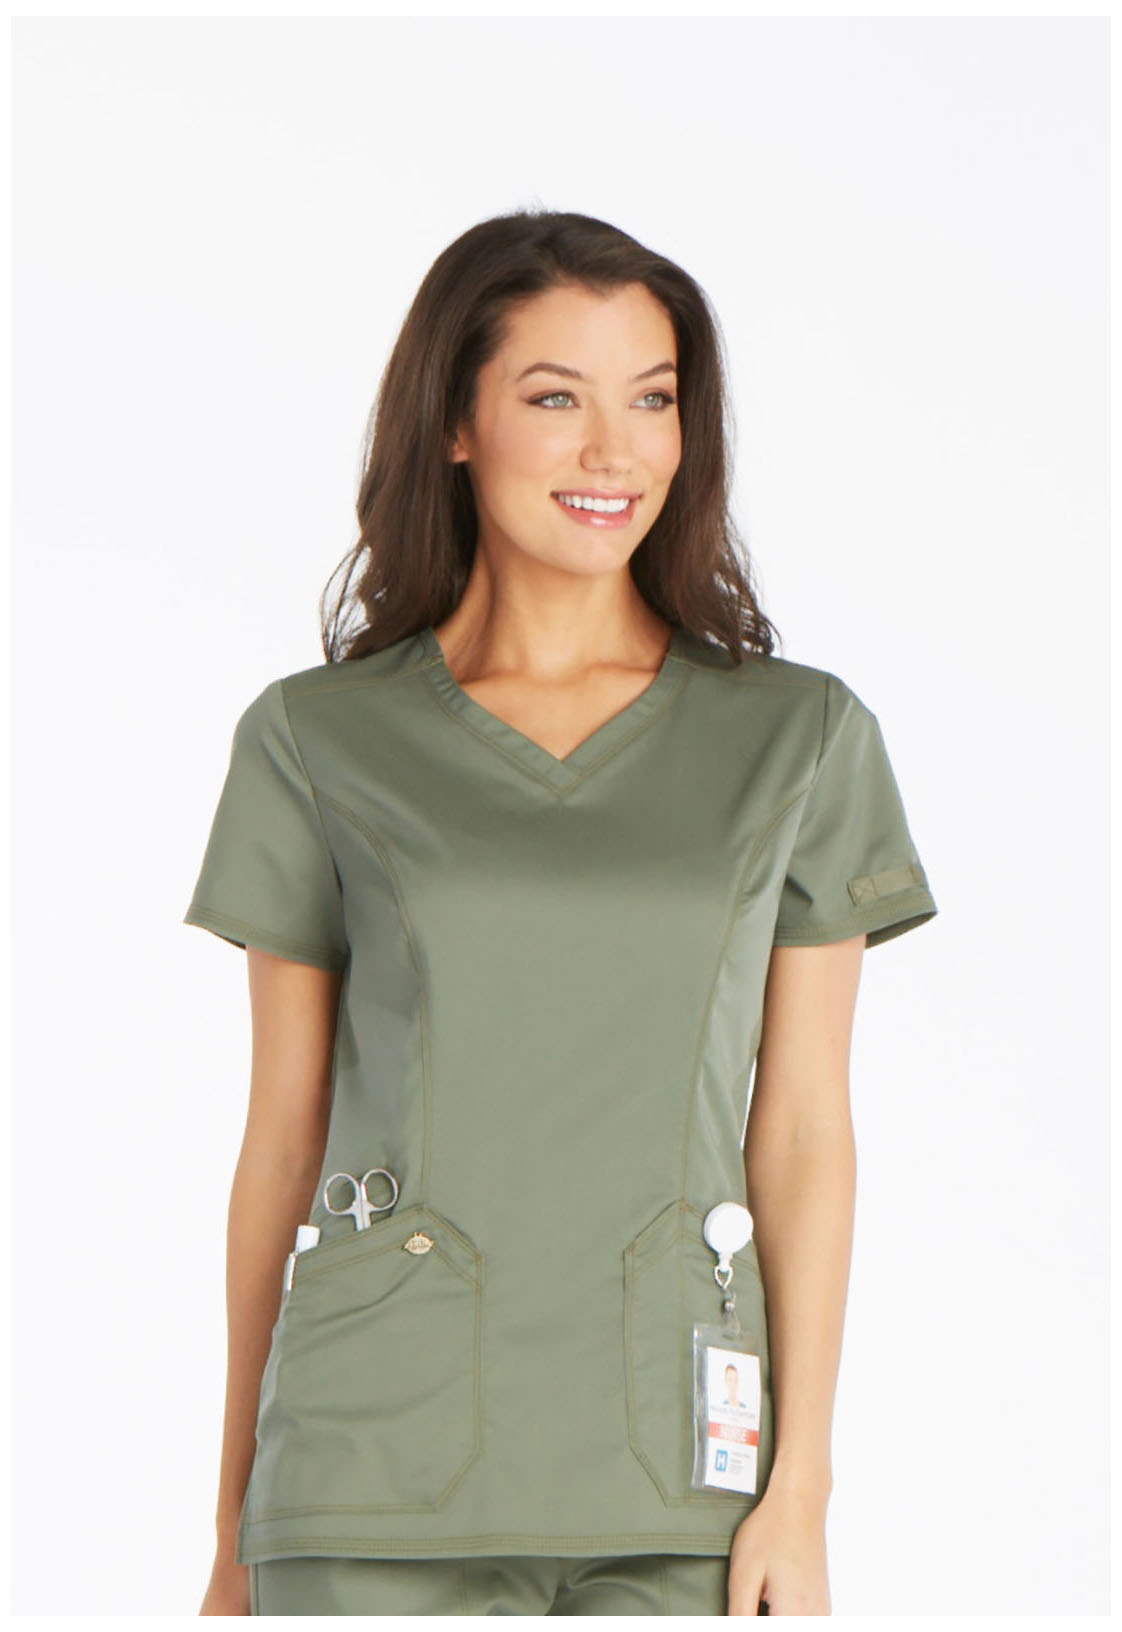 cd580d1b Dickies V-Neck Top (Regular) in Olive from Cherokee Scrubs at Cherokee 4  Less